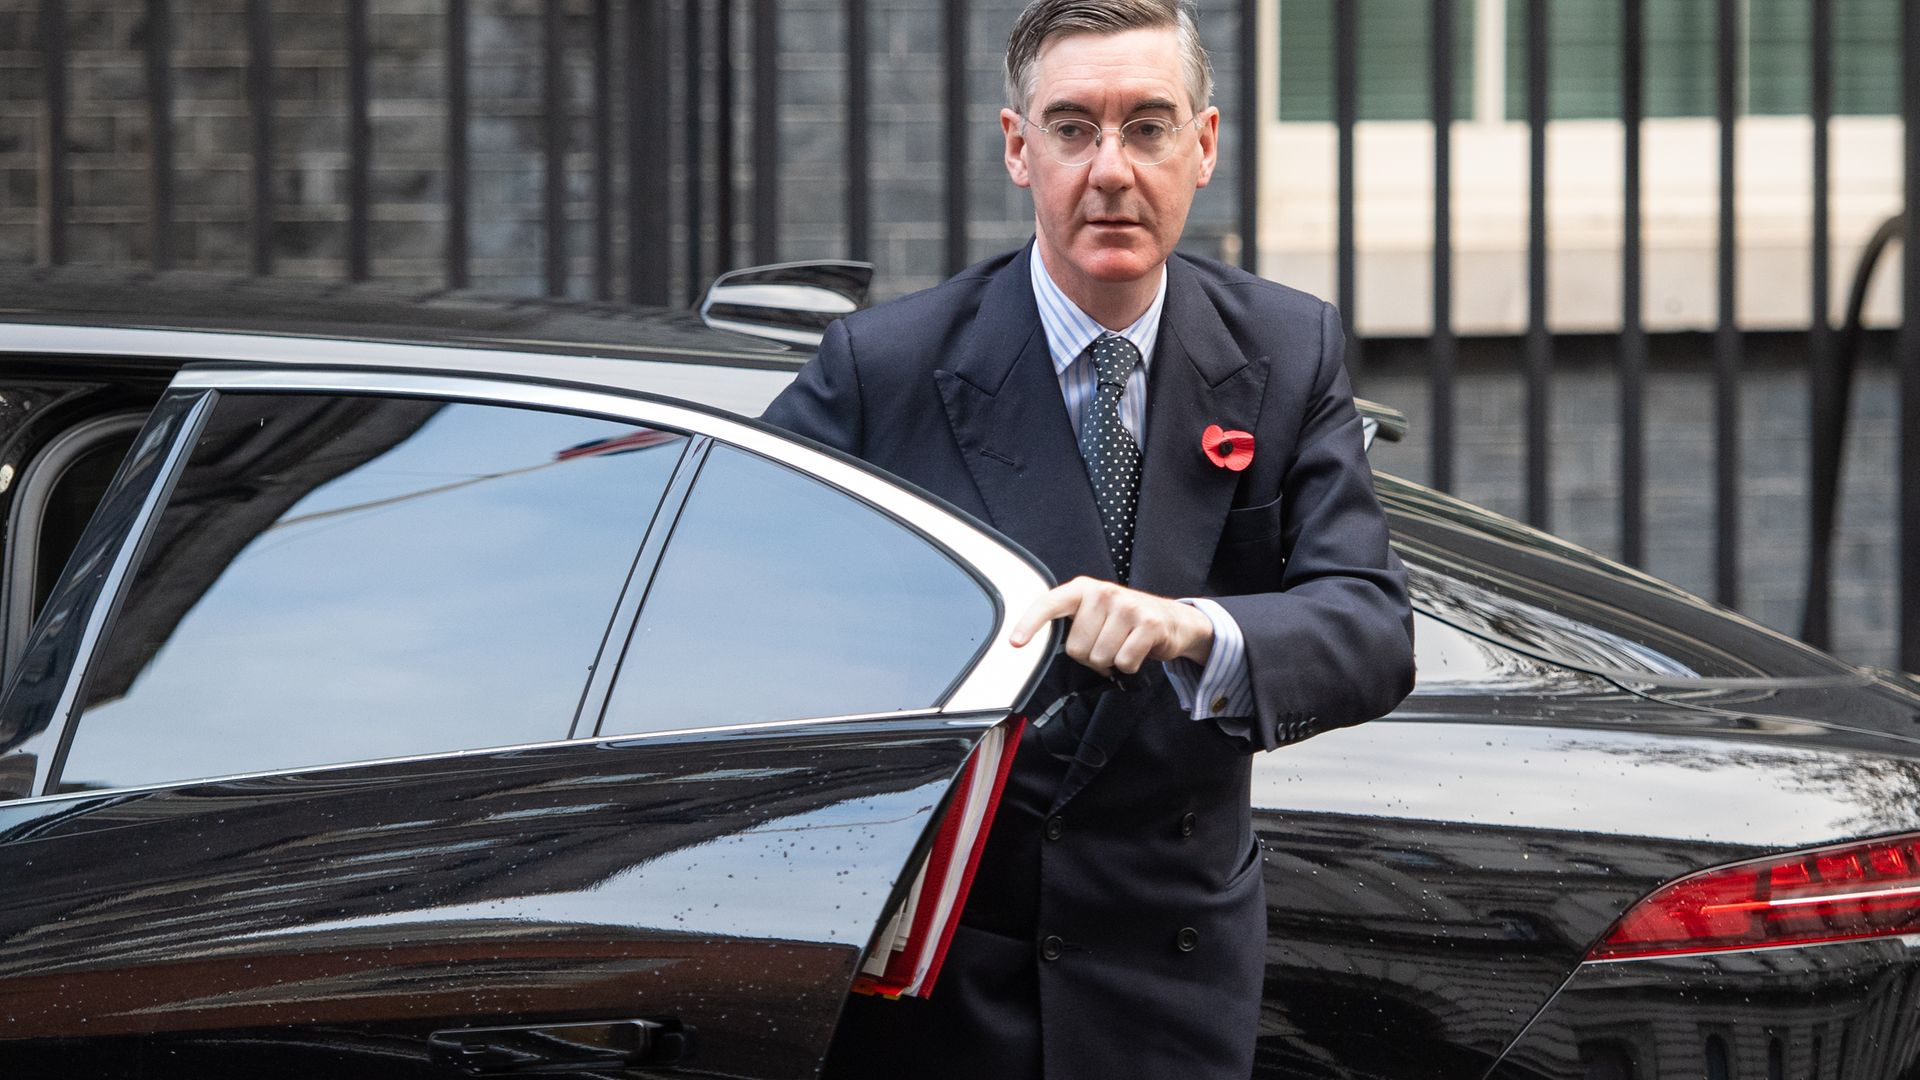 Leader of the House of Commons Jacob Rees Mogg in Downing Street, London, ahead of a Cabinet meeting at the Foreign and Commonwealth Office (FCO). - Credit: PA